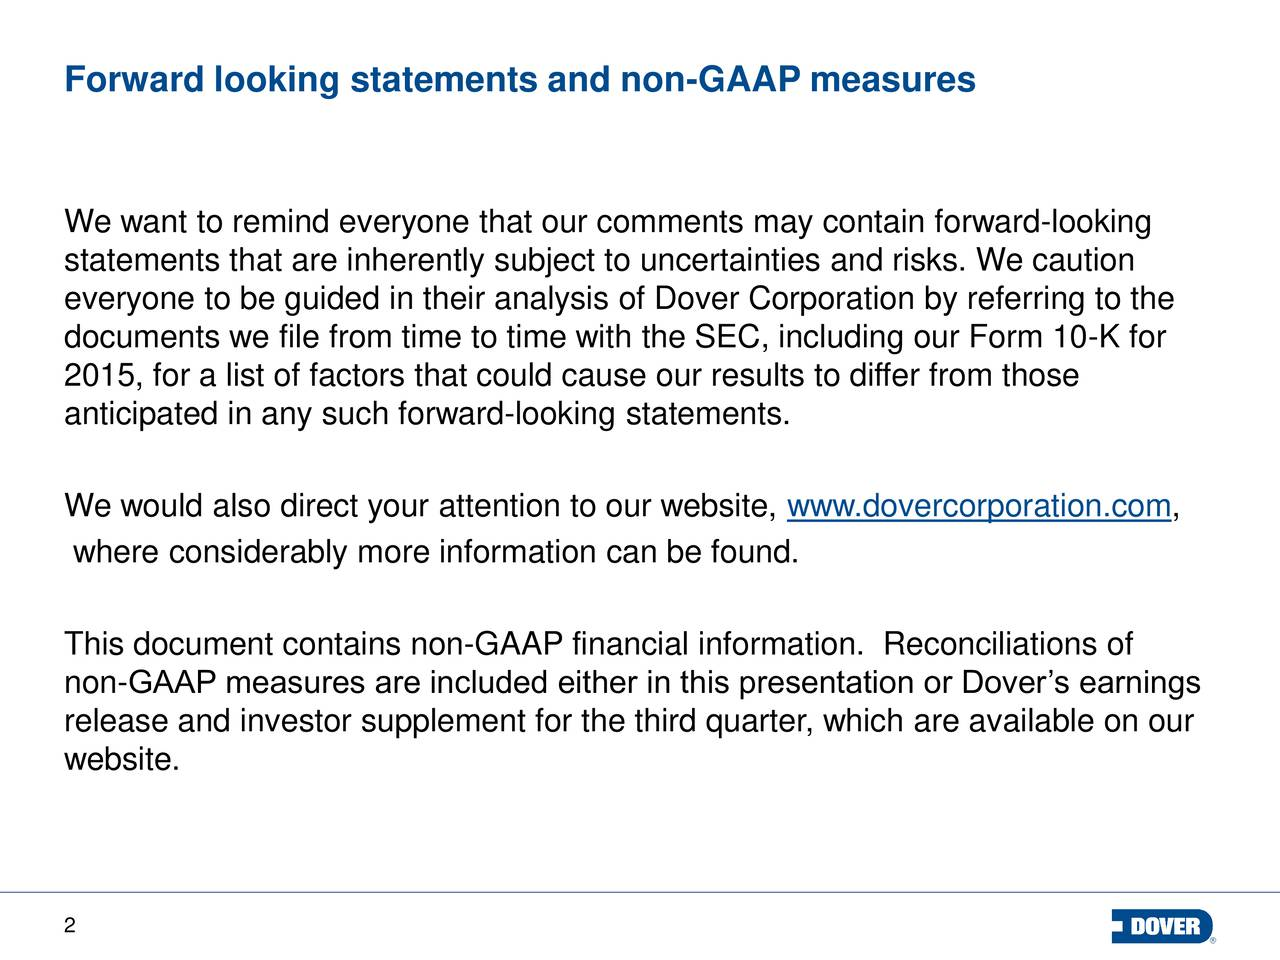 Forward looking statements and non-GAAP measures We want to remind everyone that our comments may contain forward-looking statements that are inherently subject to uncertainties and risks. We caution everyone to be guided in their analysis of Dover Corporation by referring to the documents we file from time to time with the SEC, including our Form 10-K for 2015, for a list of factors that could cause our results to differ from those anticipated in any such forward-looking statements. We would also direct your attention to our website, www.dovercorporation.com, where considerably more information can be found. This document contains non-GAAP financial information. Reconciliations of non-GAAP measures are included either in this presentation or Dovers earnings release and investor supplement for the third quarter, which are available on our website. 2